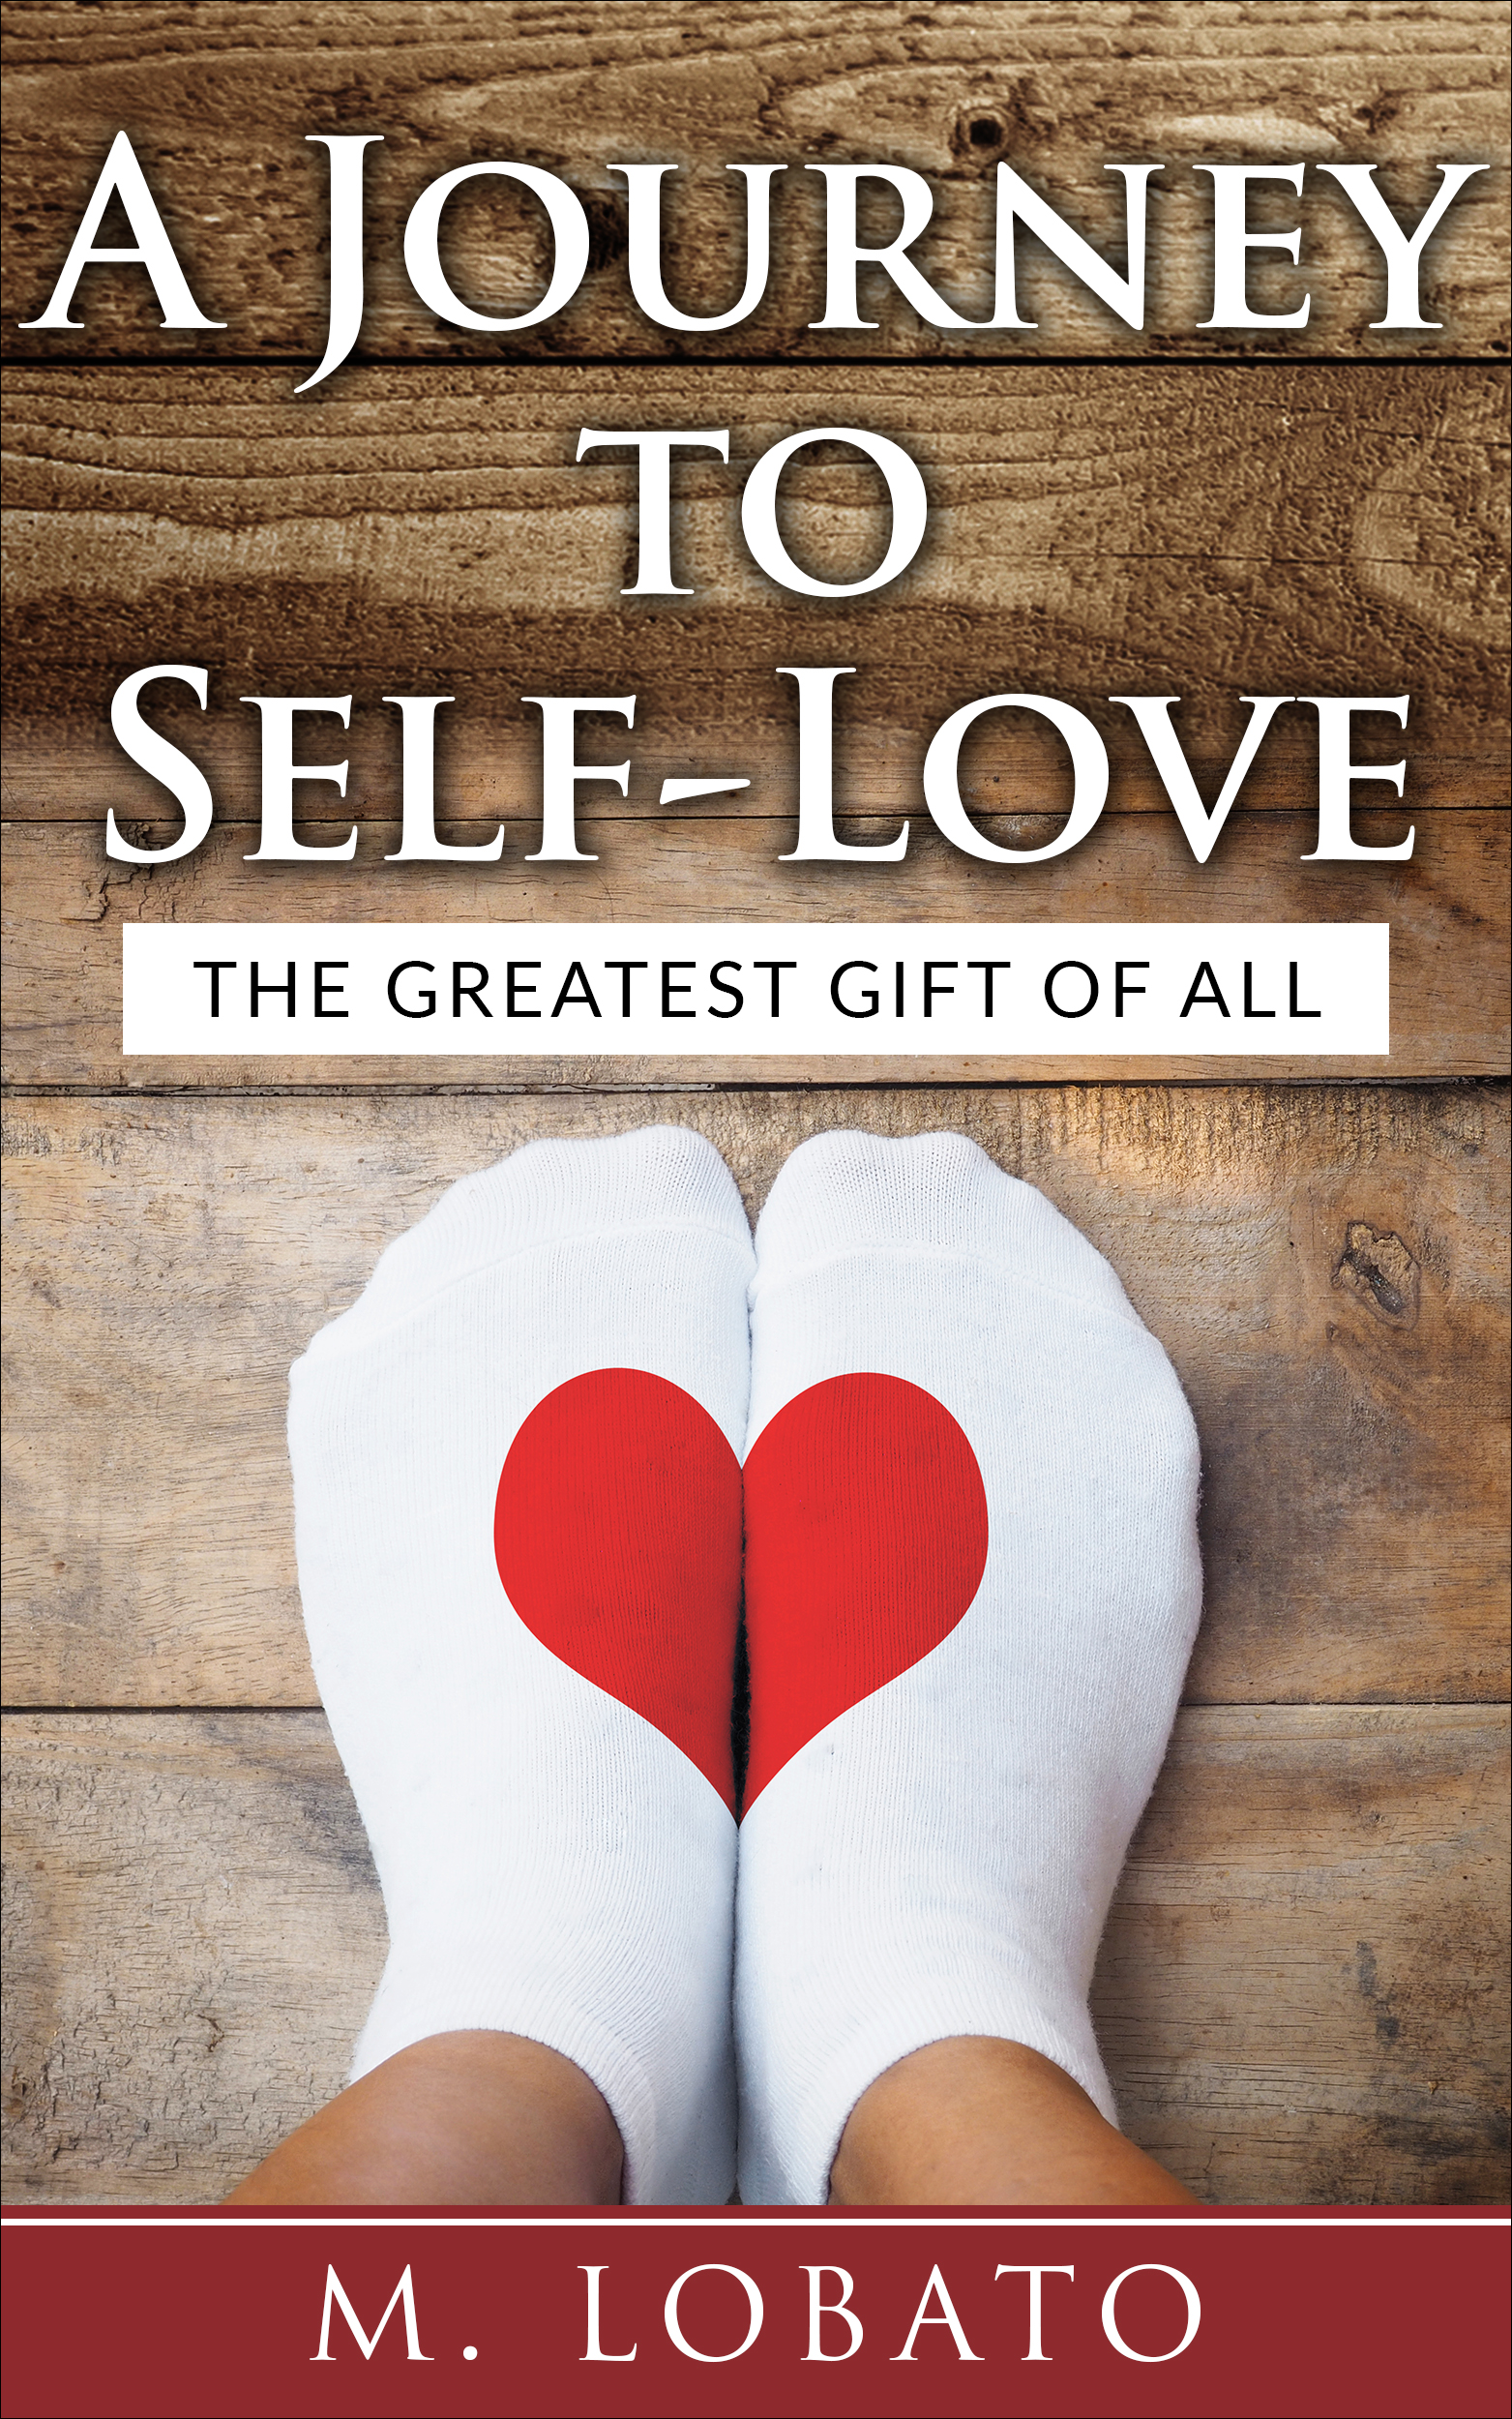 A JOURNEY TO SELF LOVE